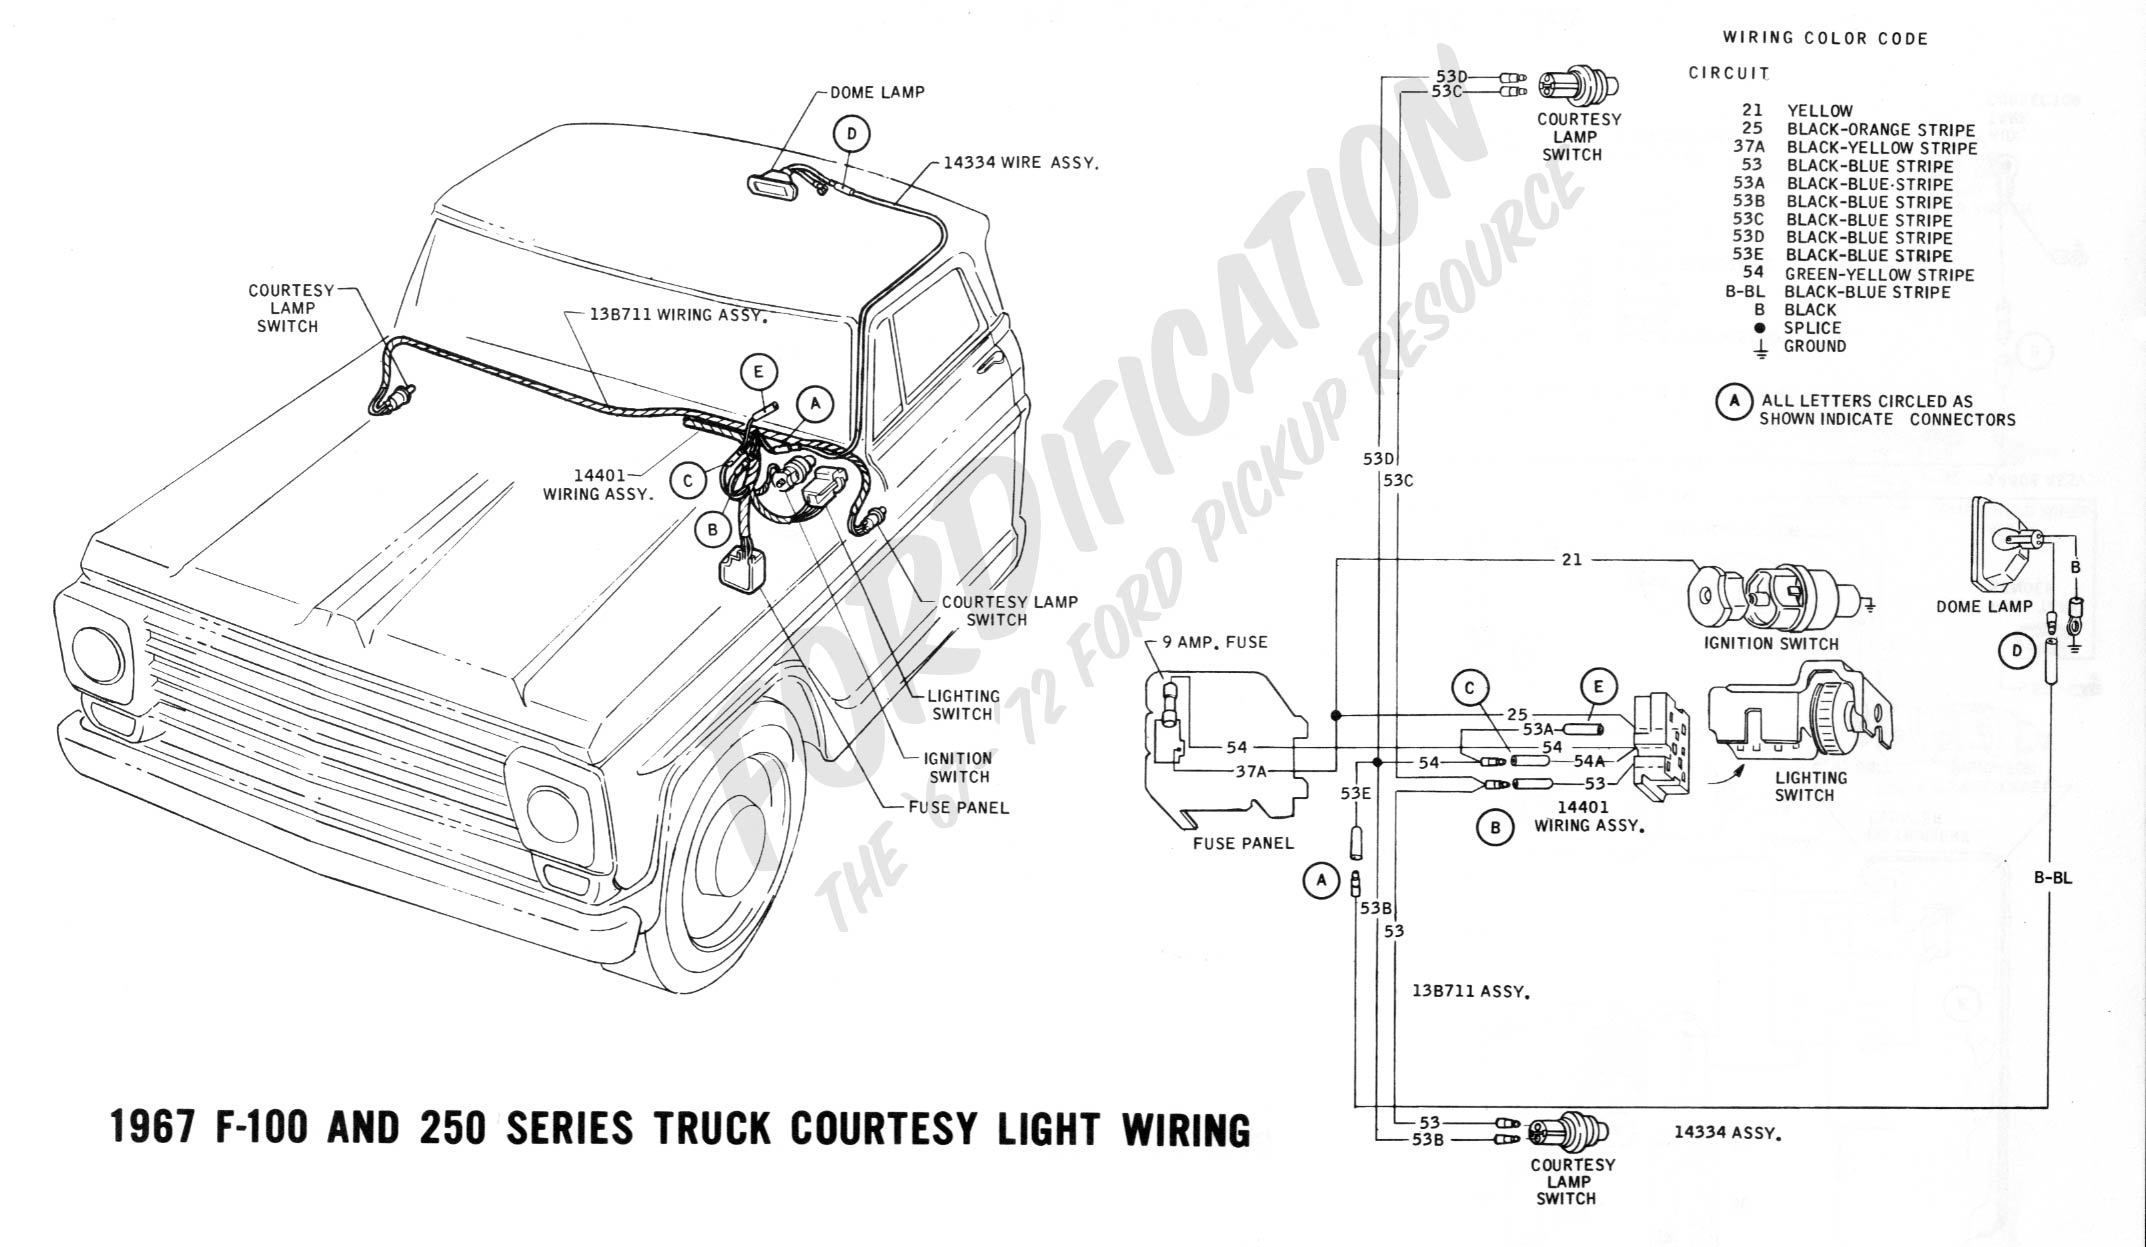 1990 F800 Diesel Wiring Diagram Ford Truck Technical Drawings And Schematics Section H